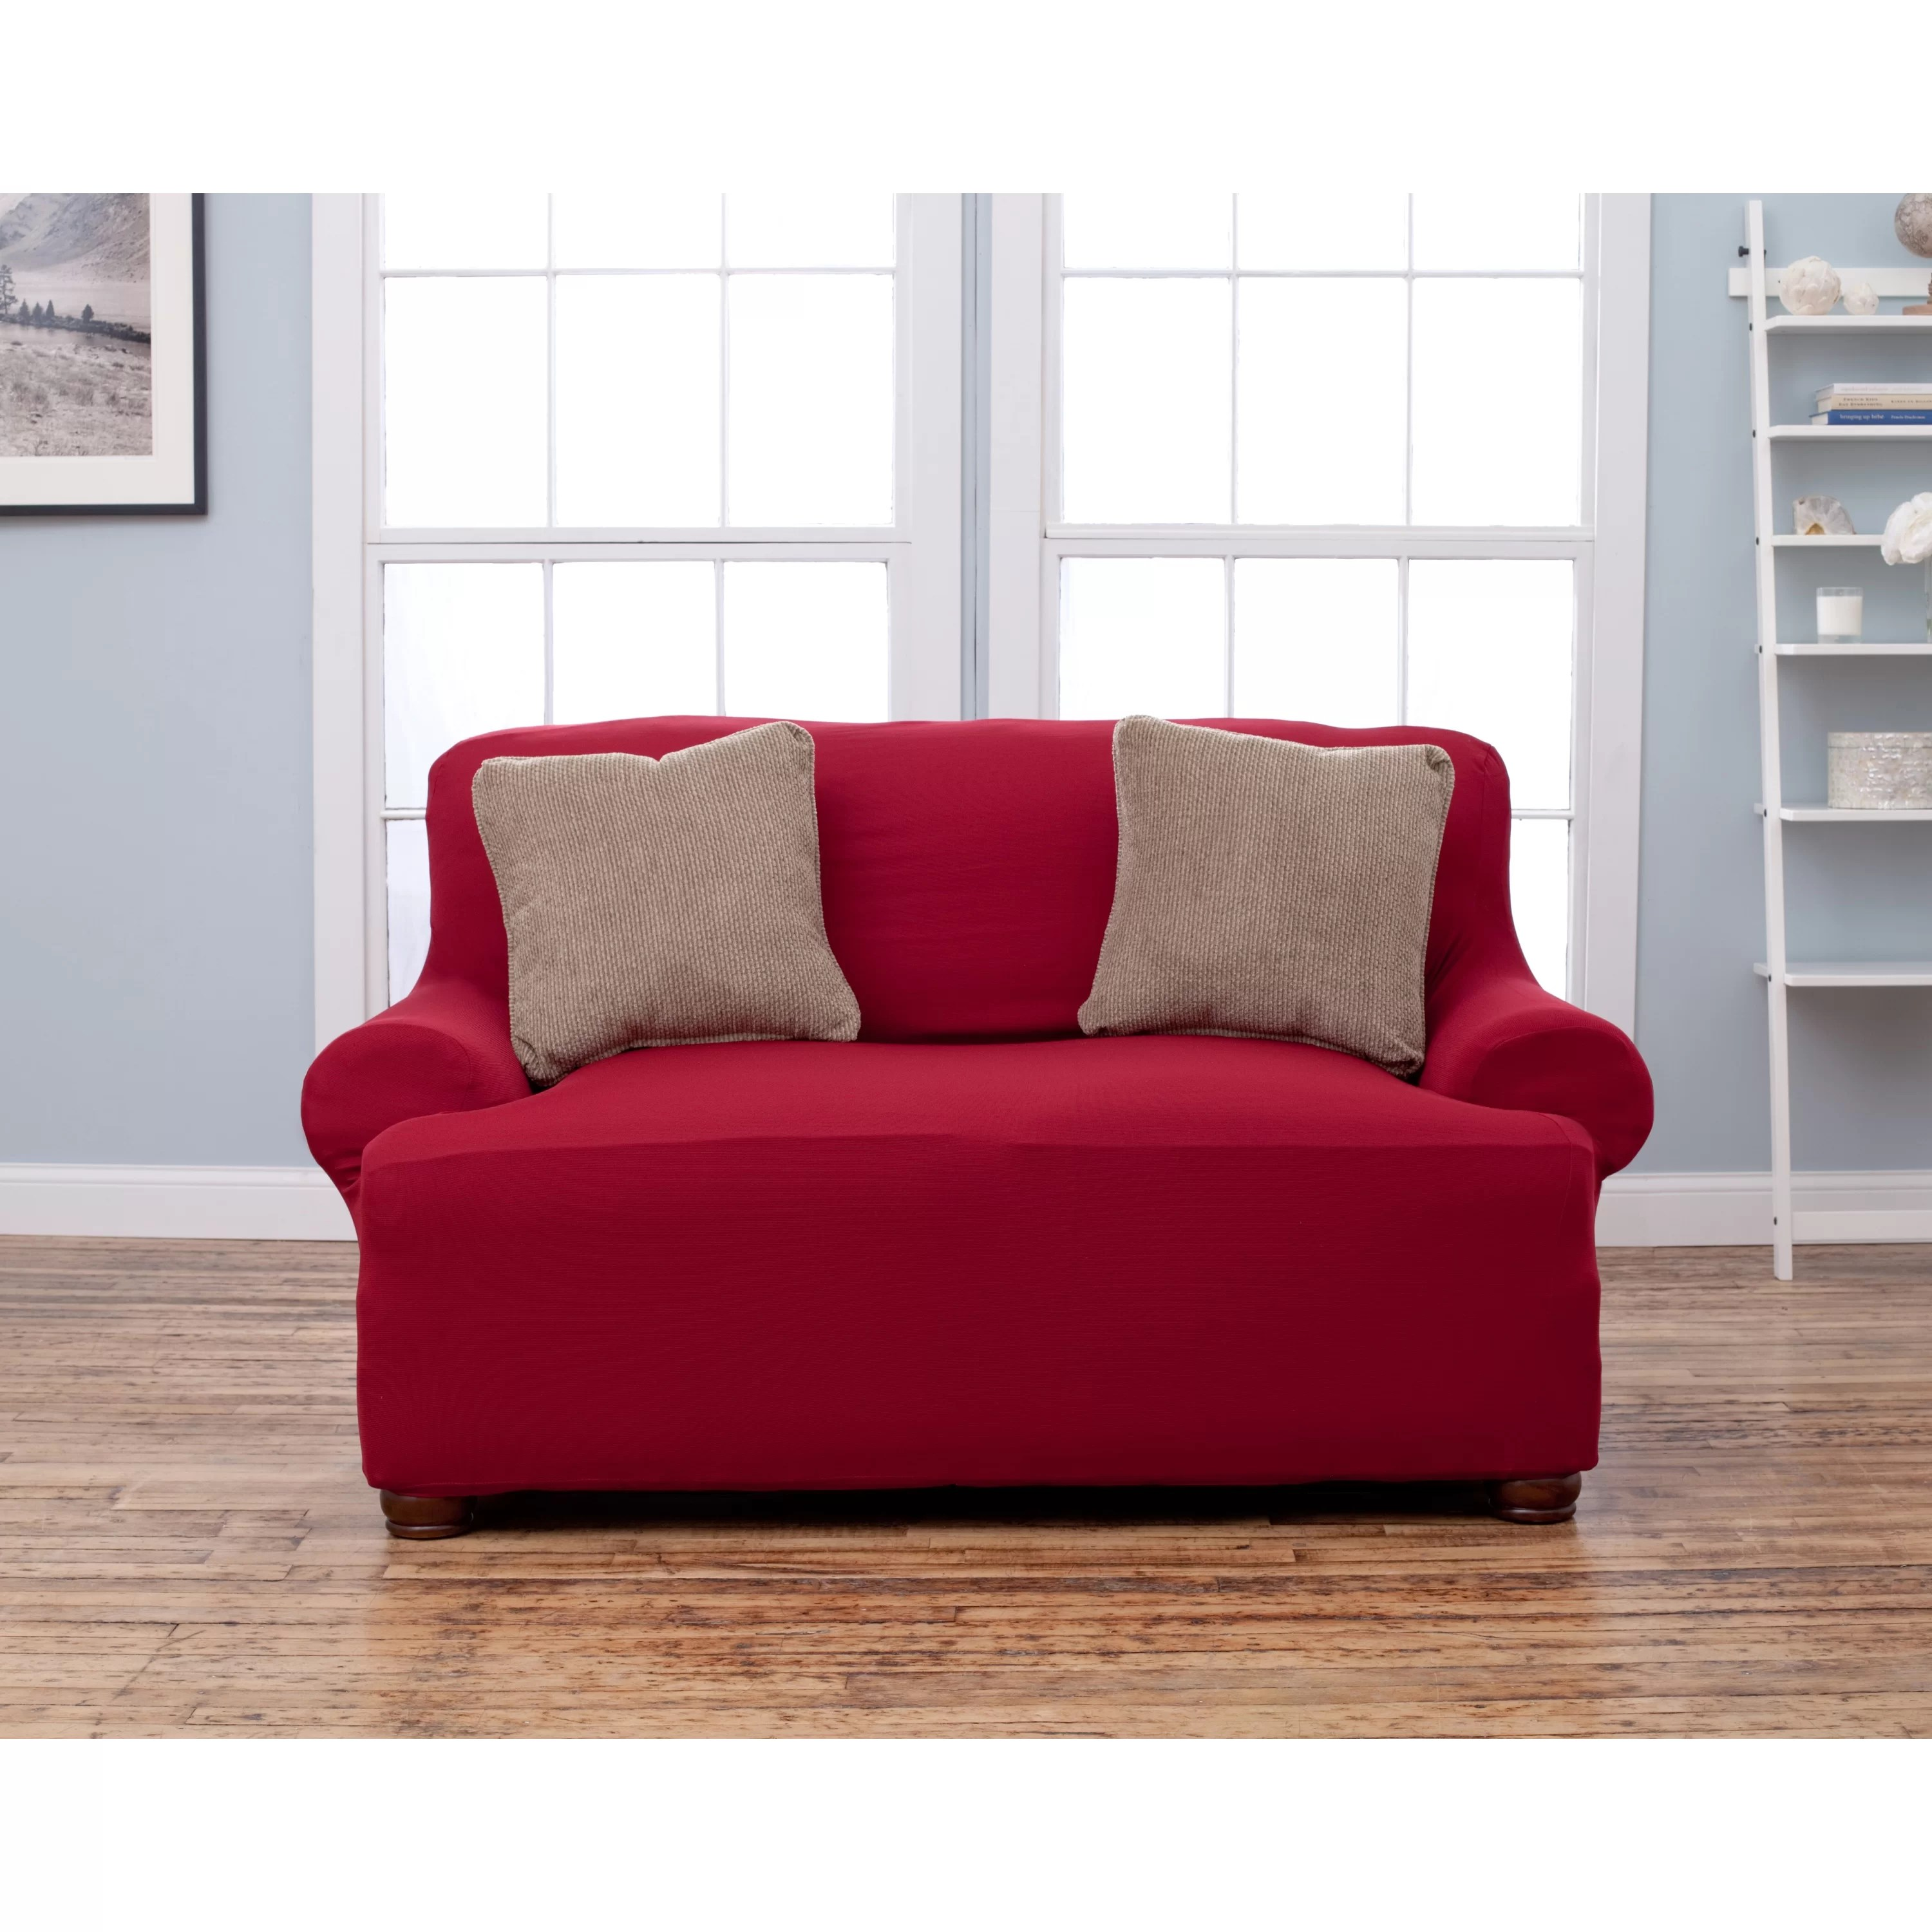 wayfair sofa covers rooms to go sectional home fashion design lucia t cushion loveseat slipcover